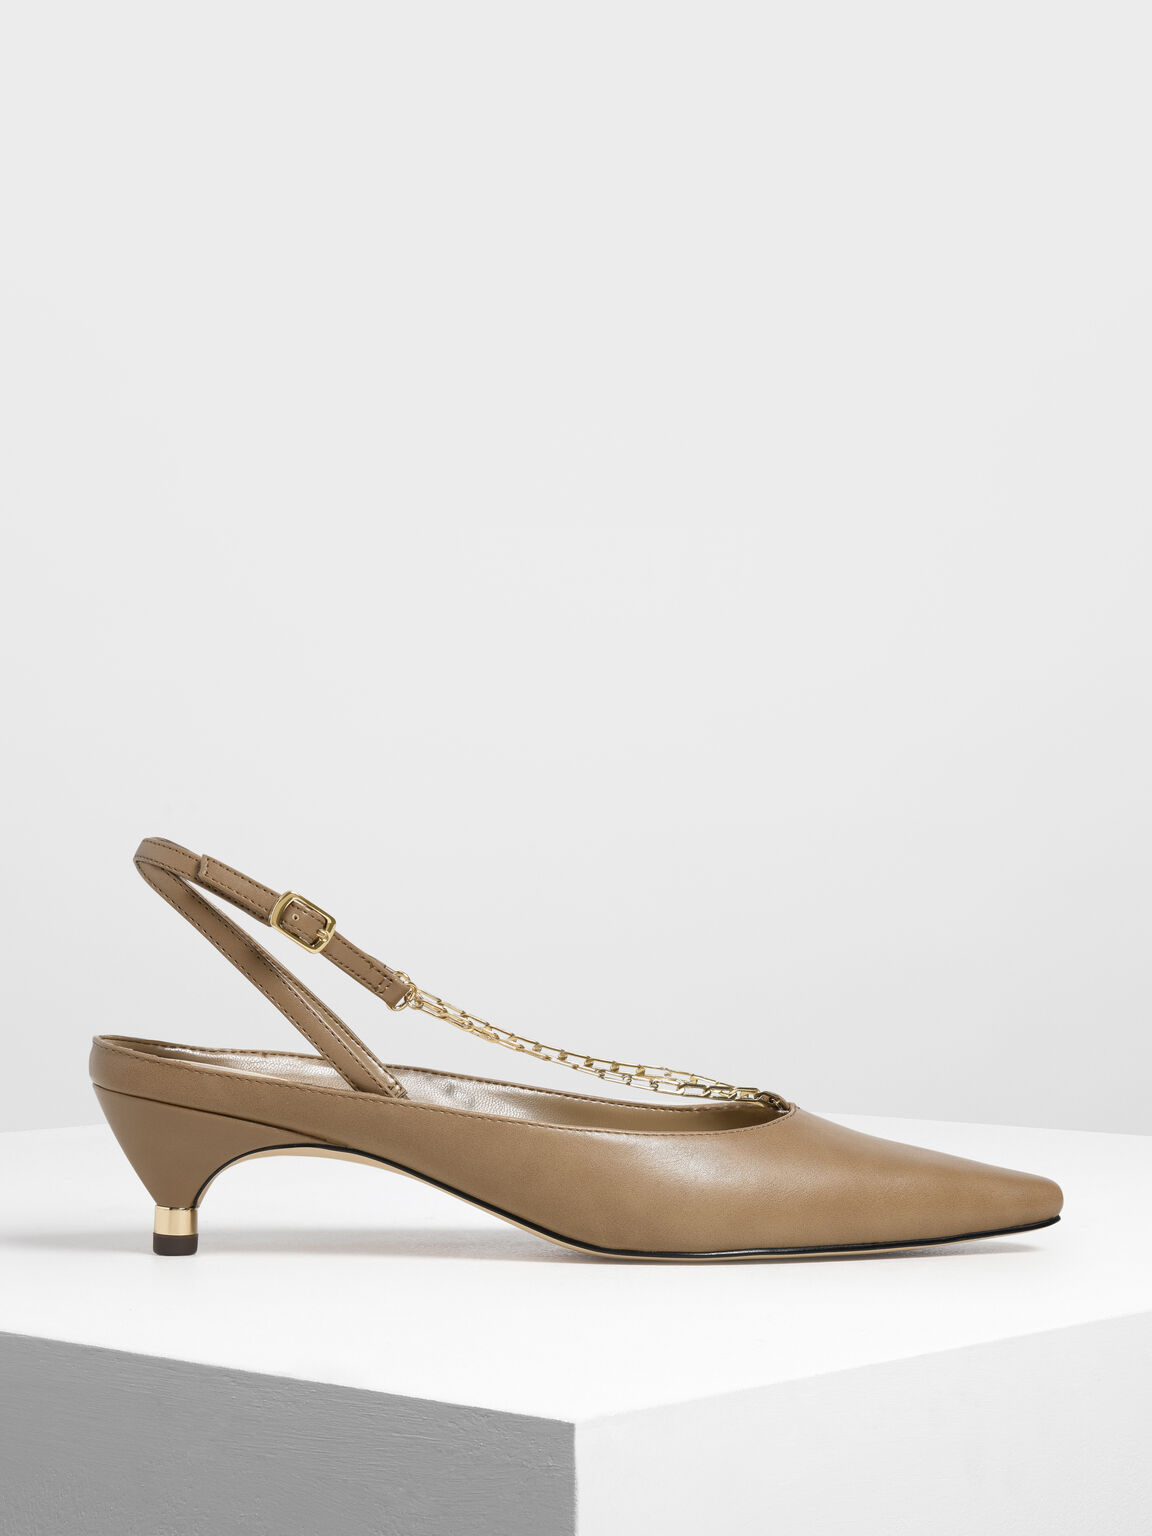 Gold Chain Detail Kitten Heel Pumps, Brown, hi-res